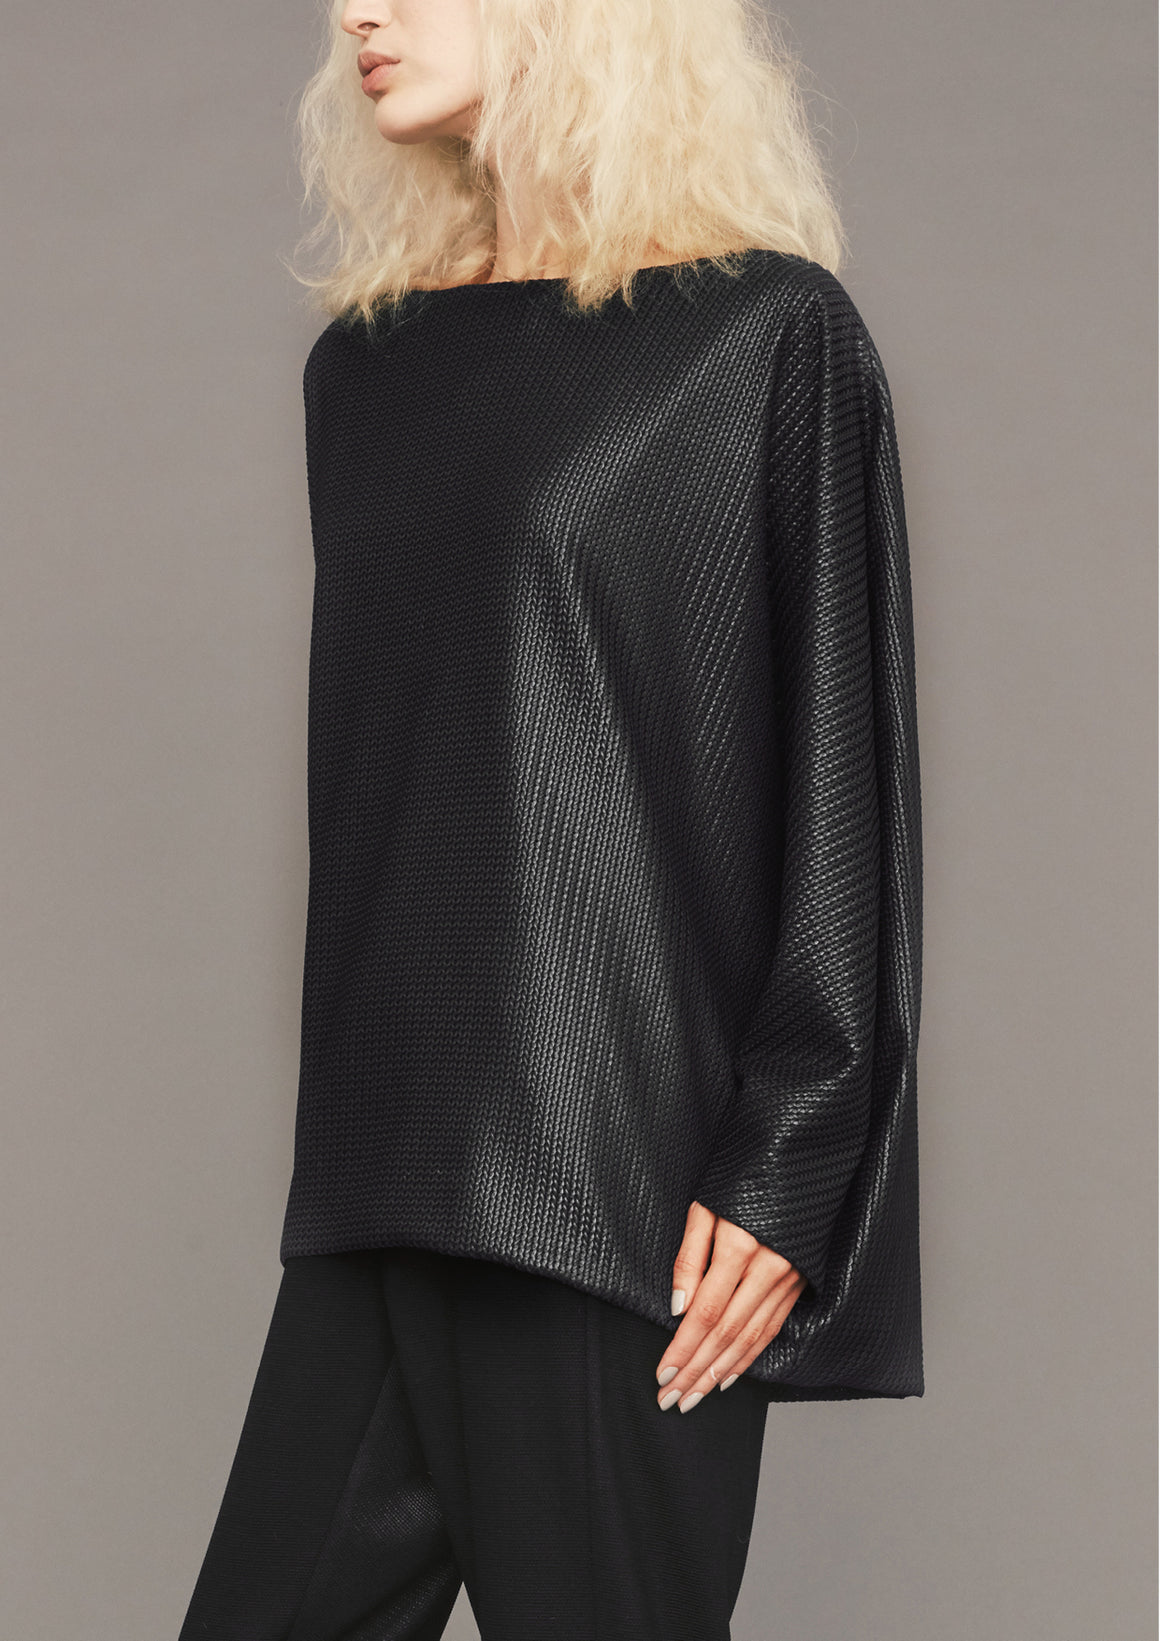 SWEATER POCKETS - FANCY TRIACETATE TECK KNIT black - BERENIK